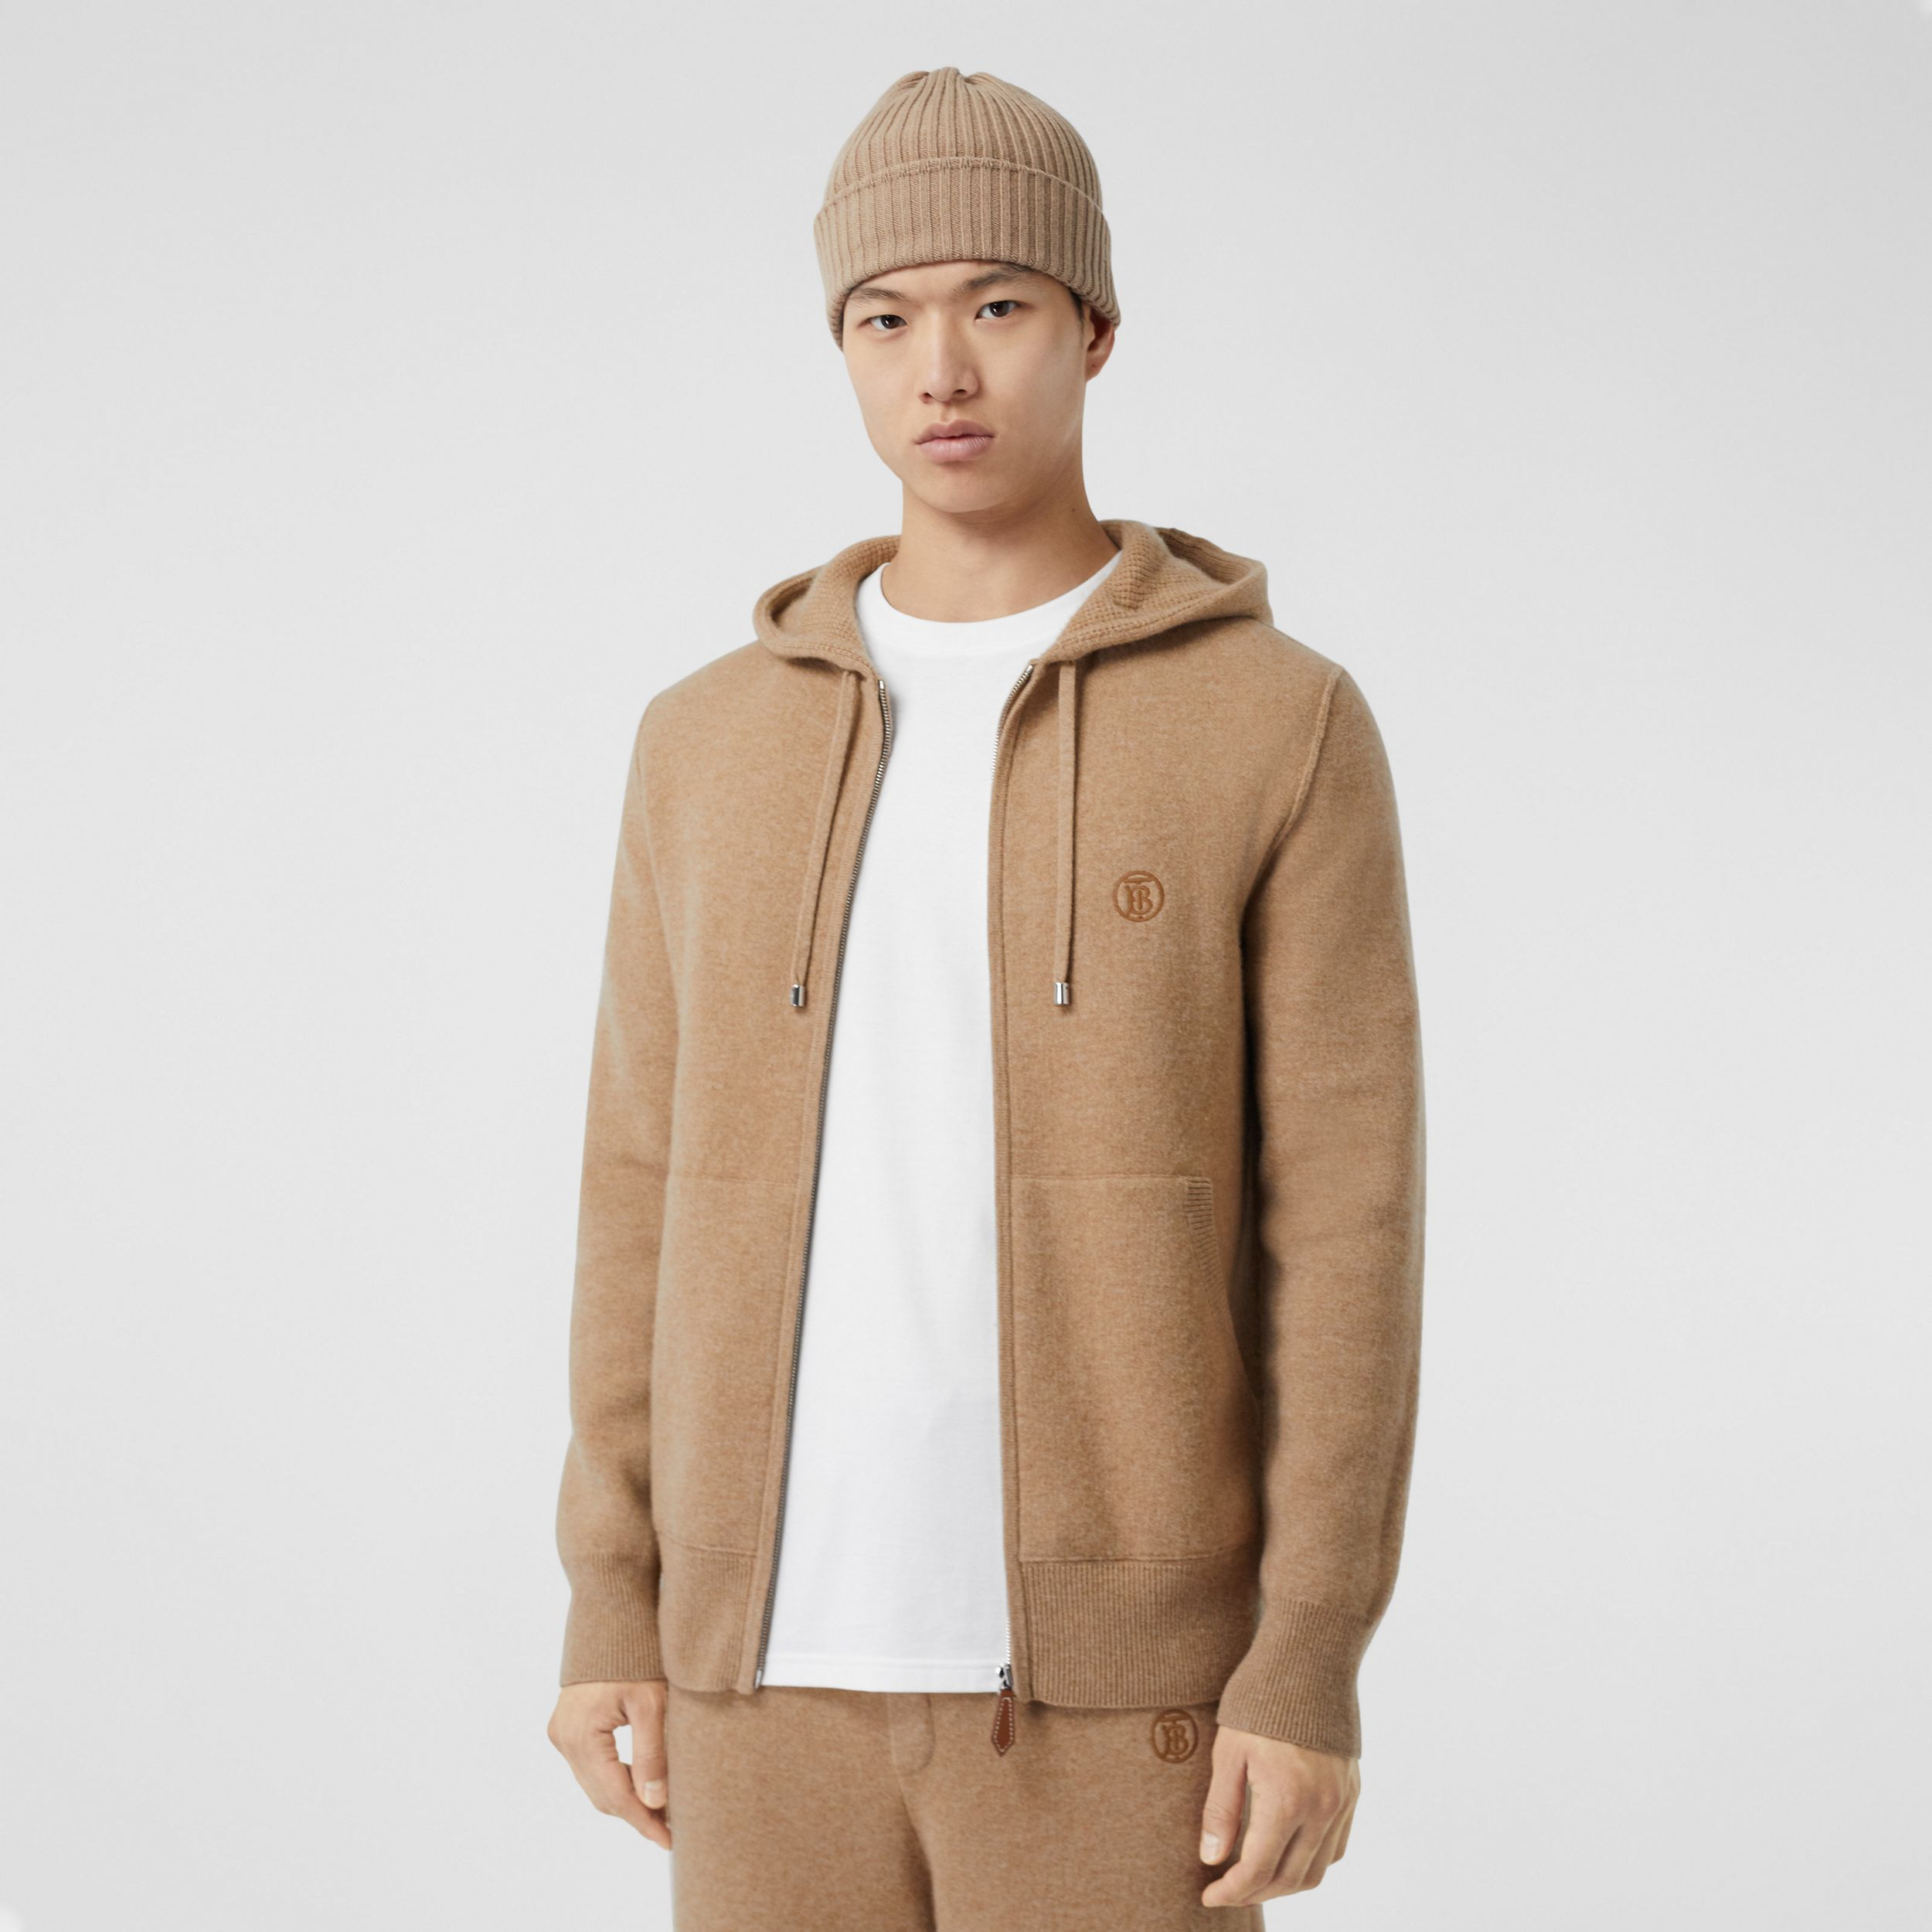 Monogram Motif Cashmere Blend Hooded Top in Pale Coffee - Men | Burberry Australia - 1